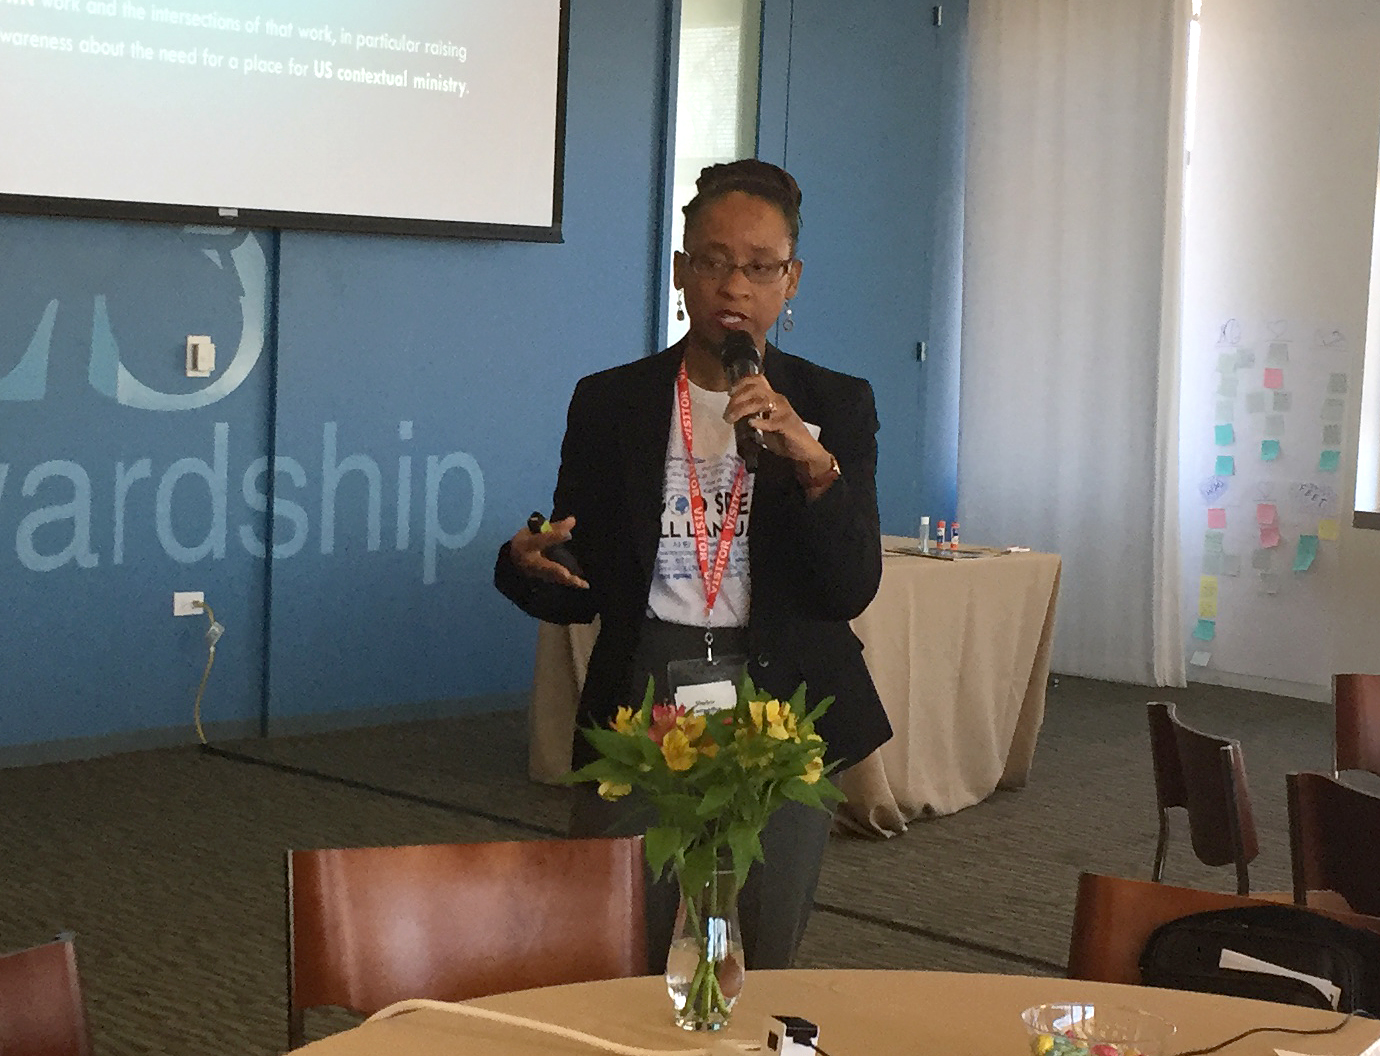 The Rev. Kennetha J. Bigham-Tsai speaks during the April 2018 meeting of the Connectional Table in Chicago. The meeting brought her on board as the body's chief connectional ministries officer. Photo by Heather Hahn, UMNS.